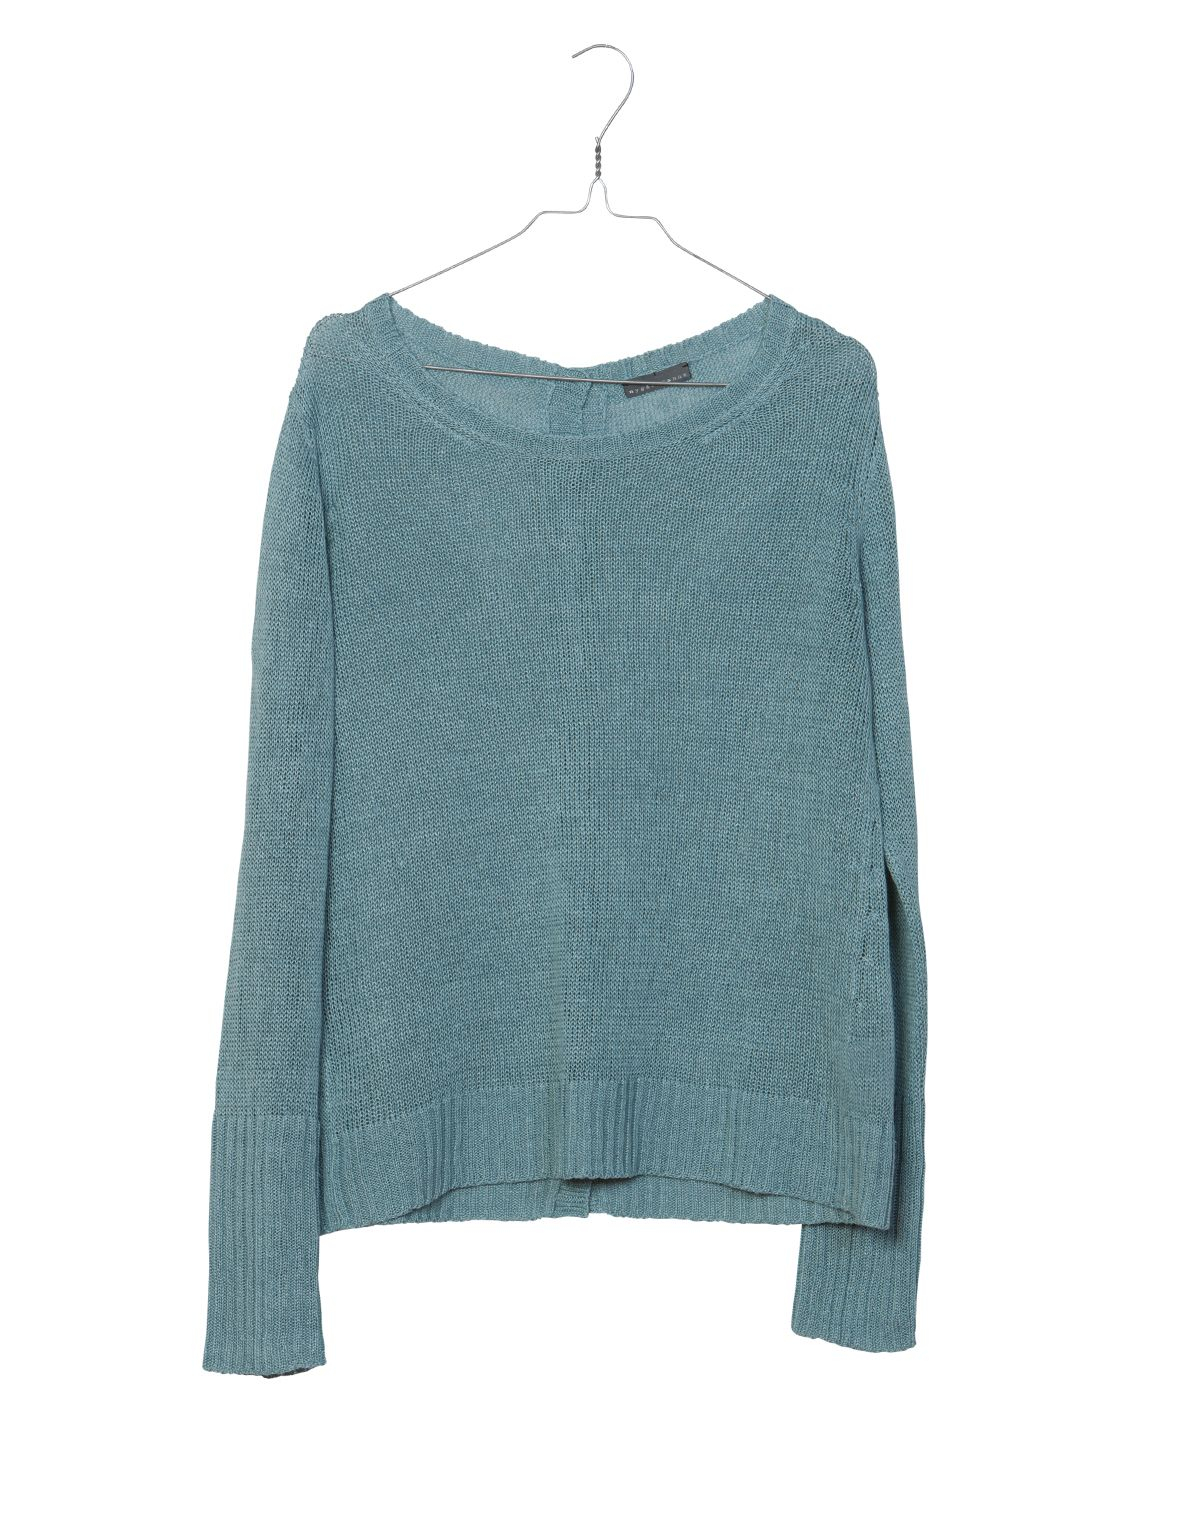 Nygards Anna Spring 2017 Knitted Linen Button Sweater